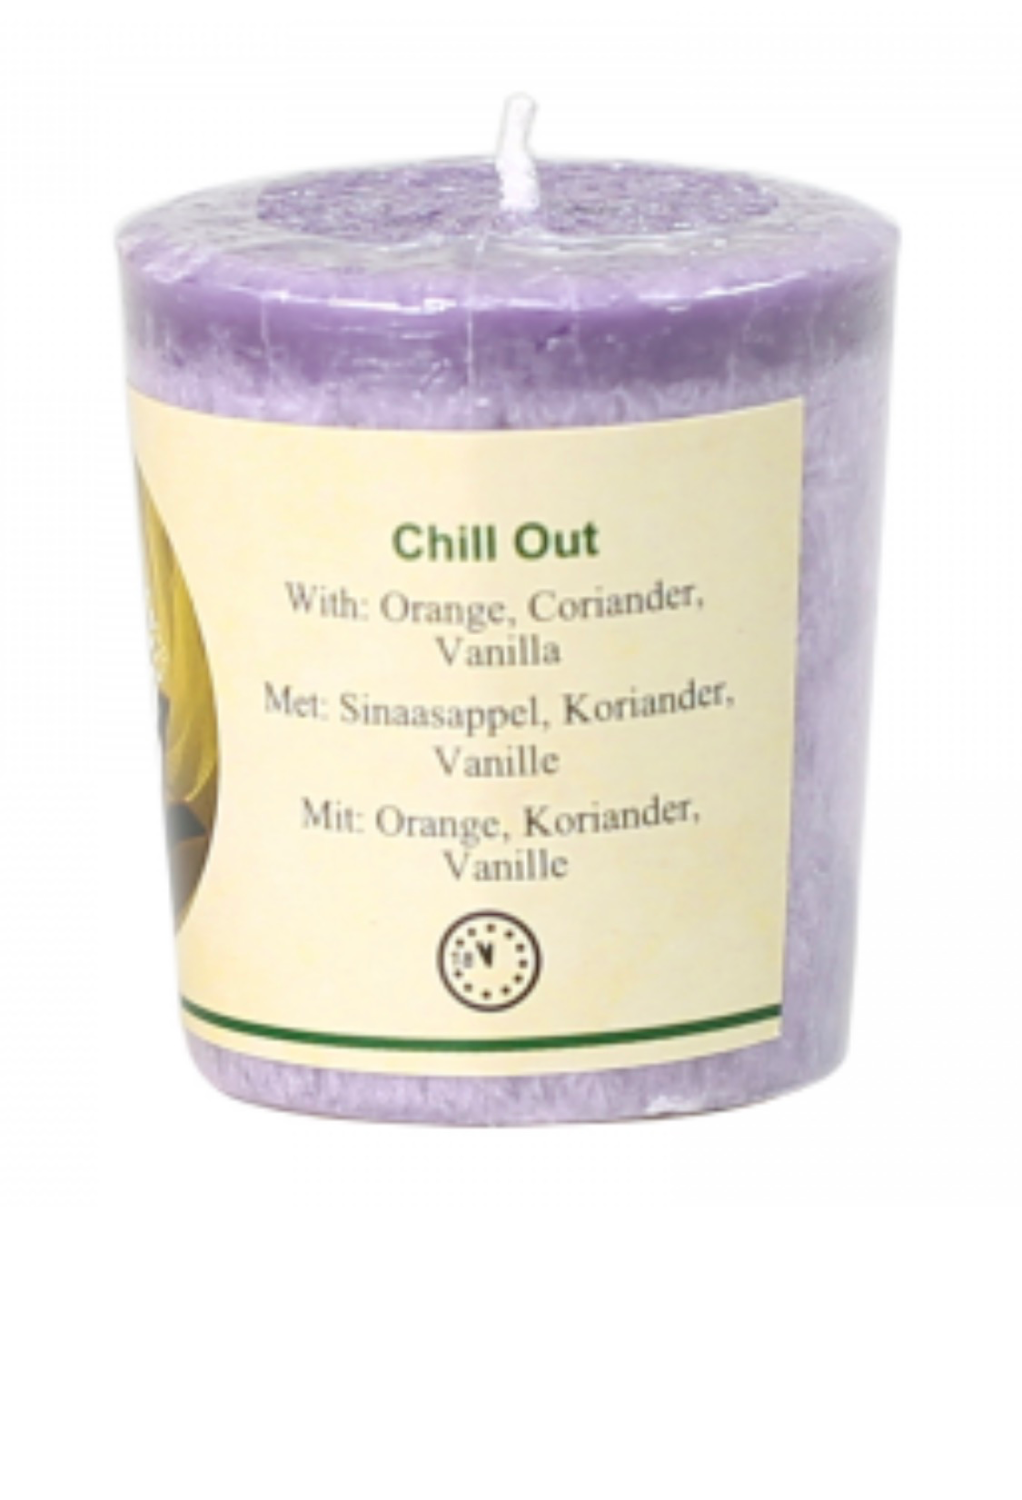 Chill-out Scented Candle - Chill-Out